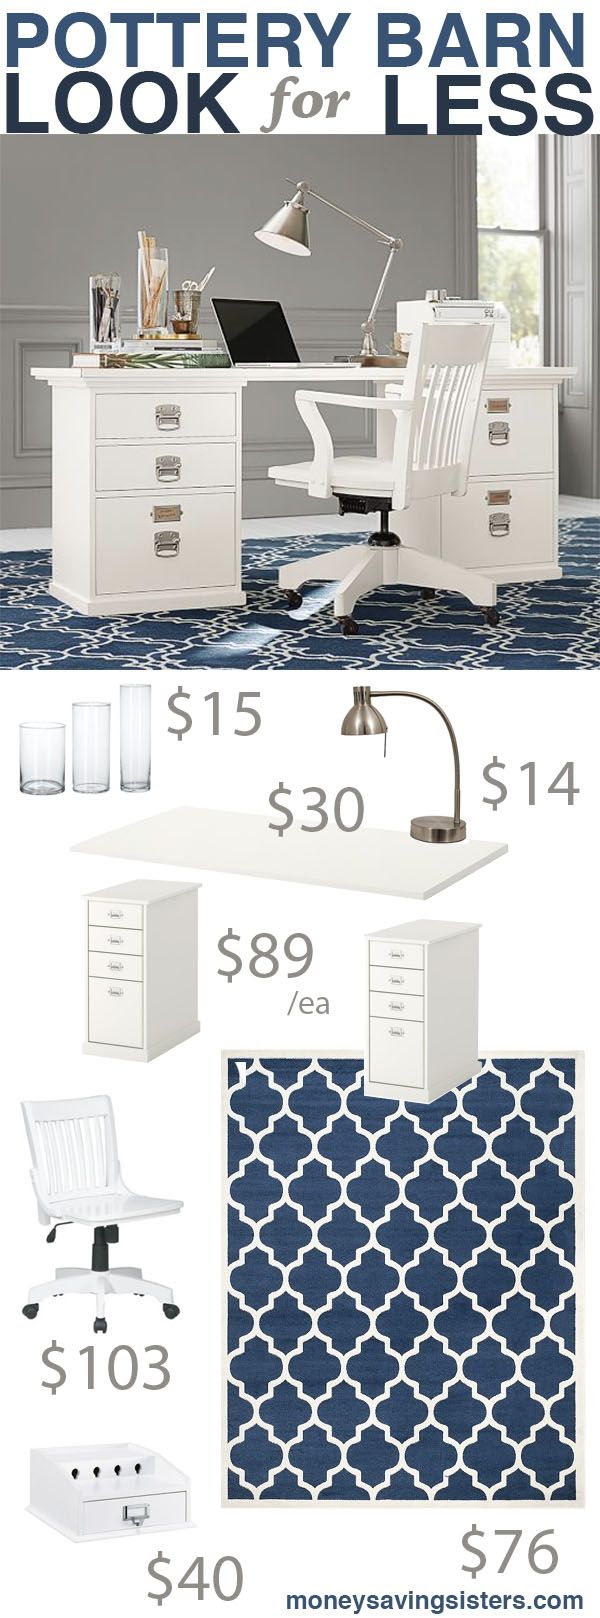 Pottery barn office furniture 2 - This Site Has Lots Of Pottery Barn Knockoffs And Rooms On A Budget Love The Look Of This Pottery Barn Office Makeover